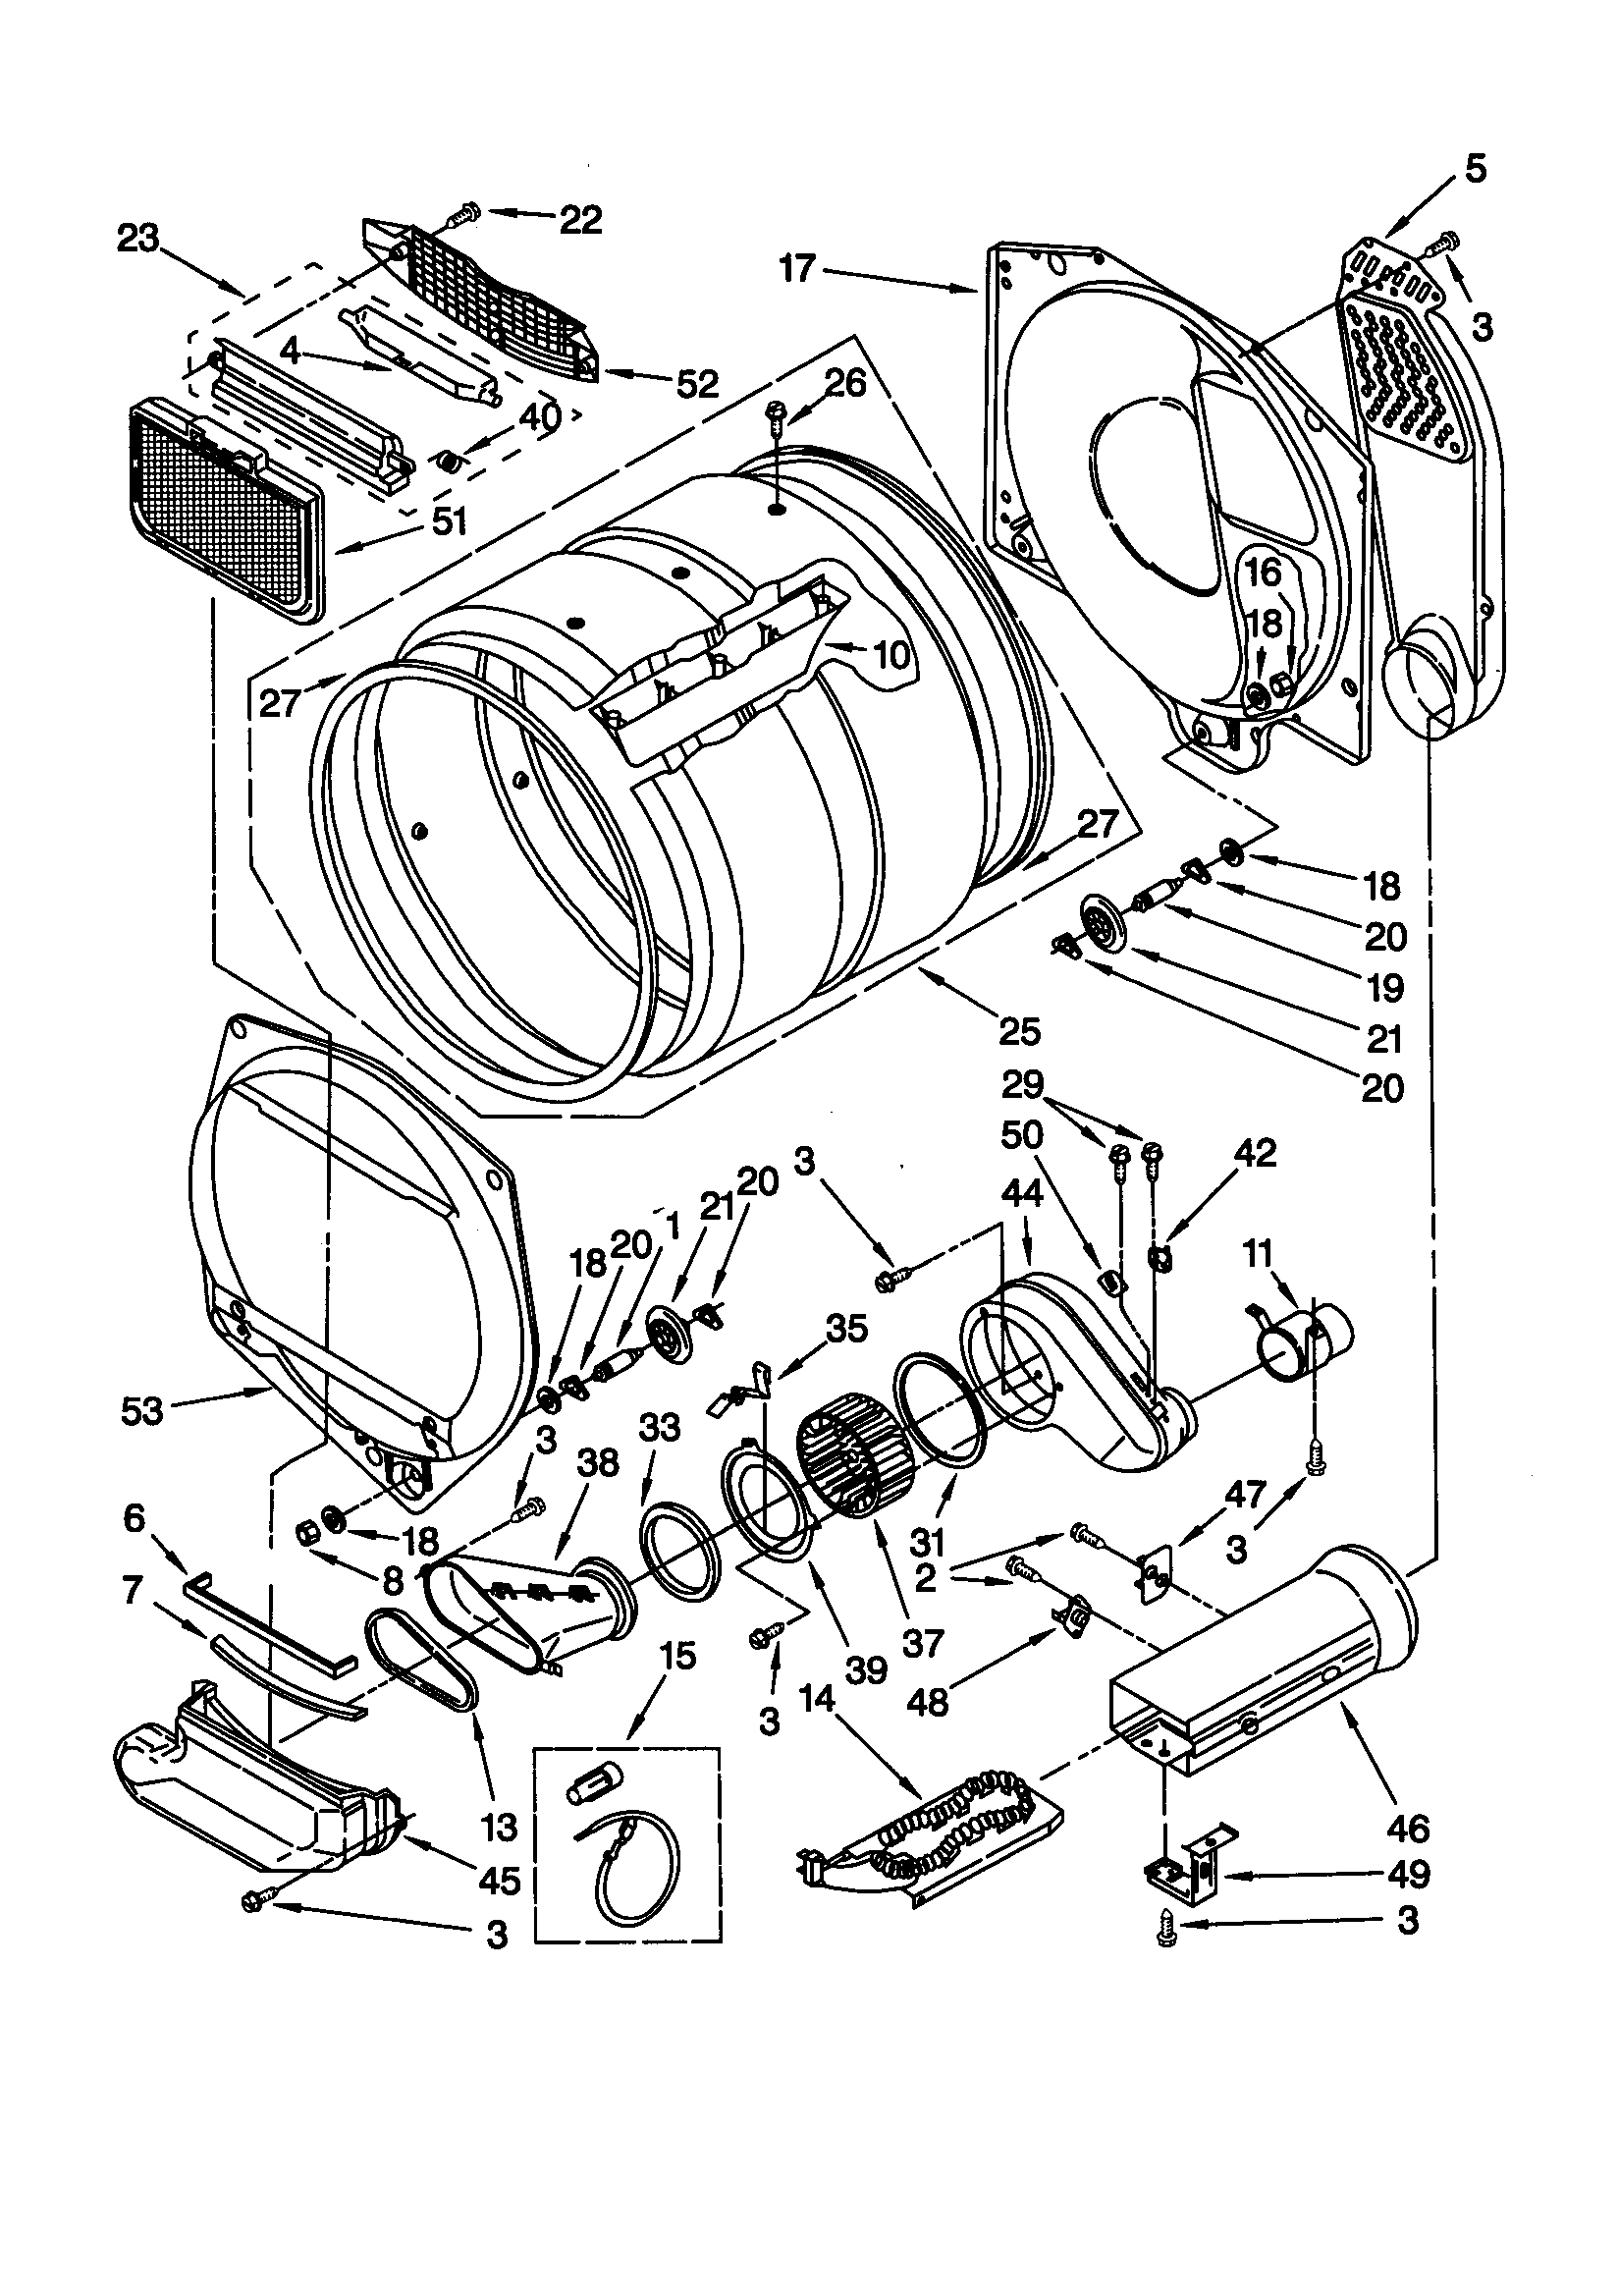 DRYER BULKHEAD Diagram & Parts List for Model lte6234dq1